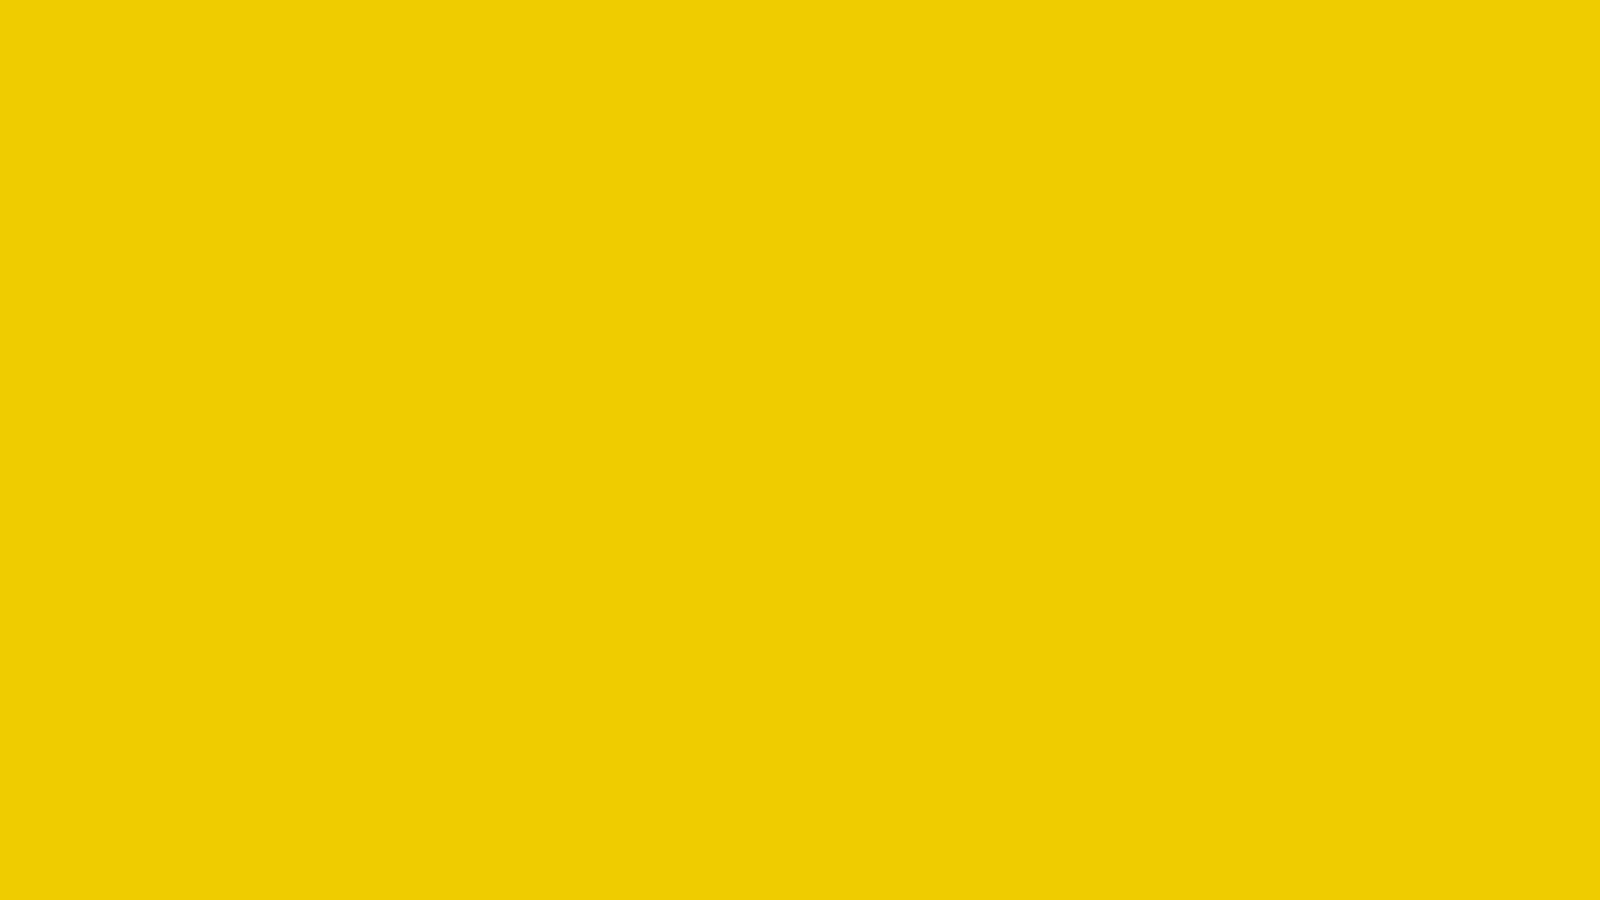 1600x900 Yellow Munsell Solid Color Background